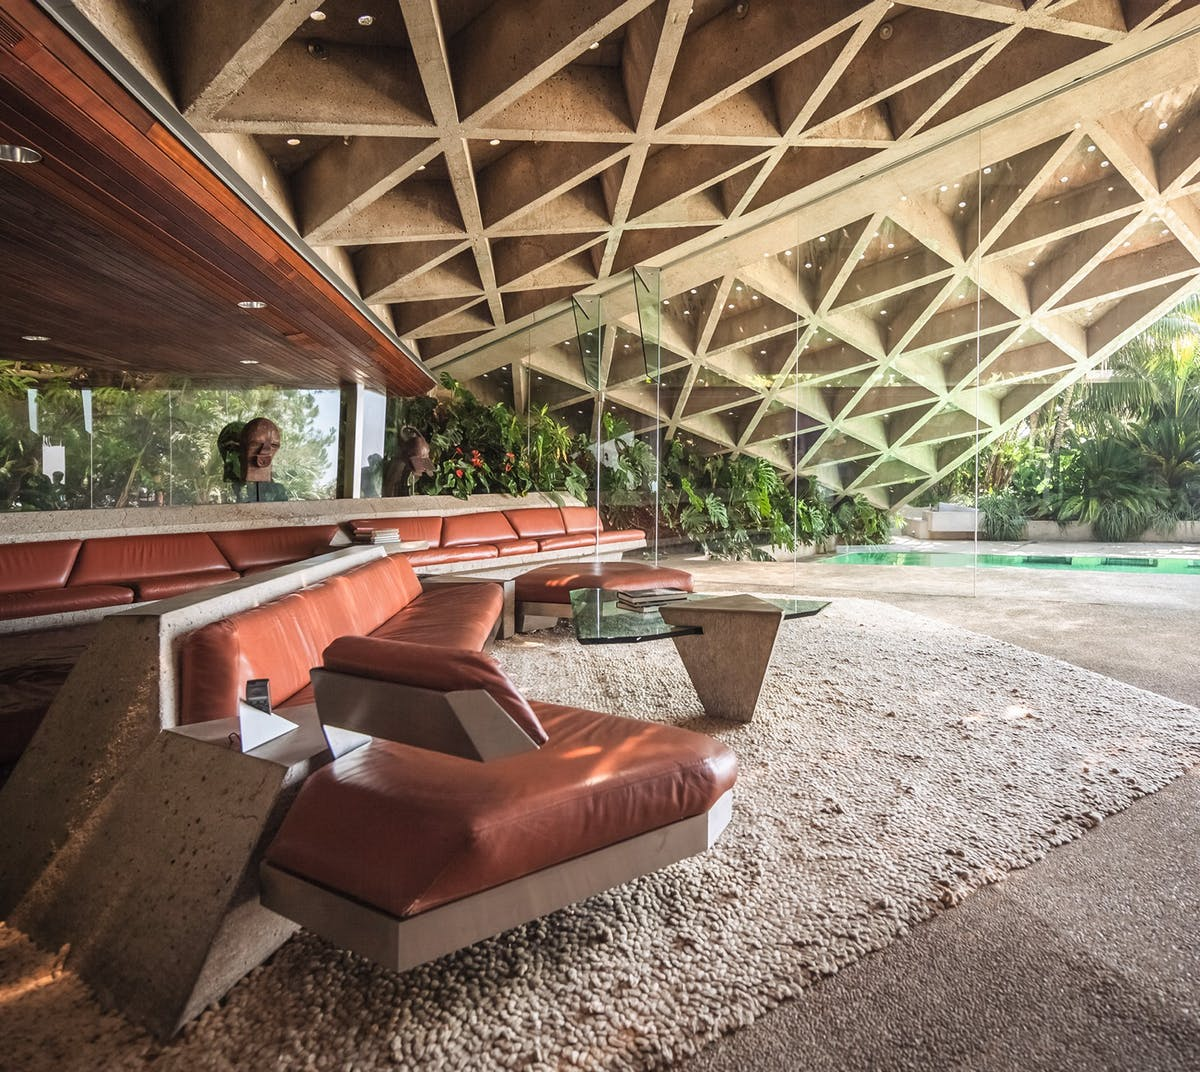 Mid Century Modern Architecture A Look At Mid Century: Win €�Mid-Century Modern Architecture Travel Guide: West